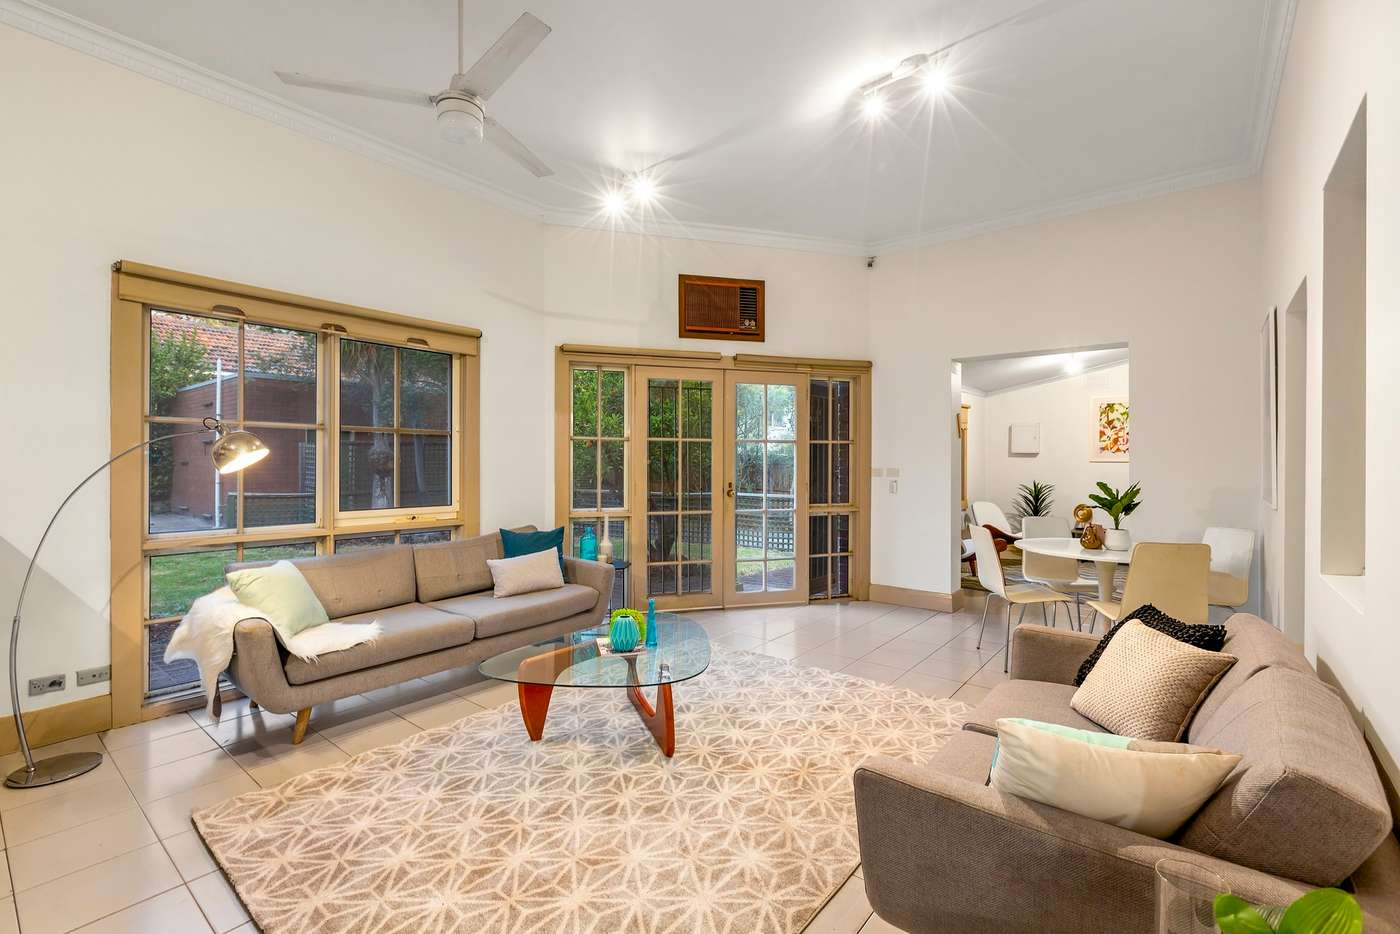 Sixth view of Homely house listing, 36 Hotham Street, St Kilda East VIC 3183